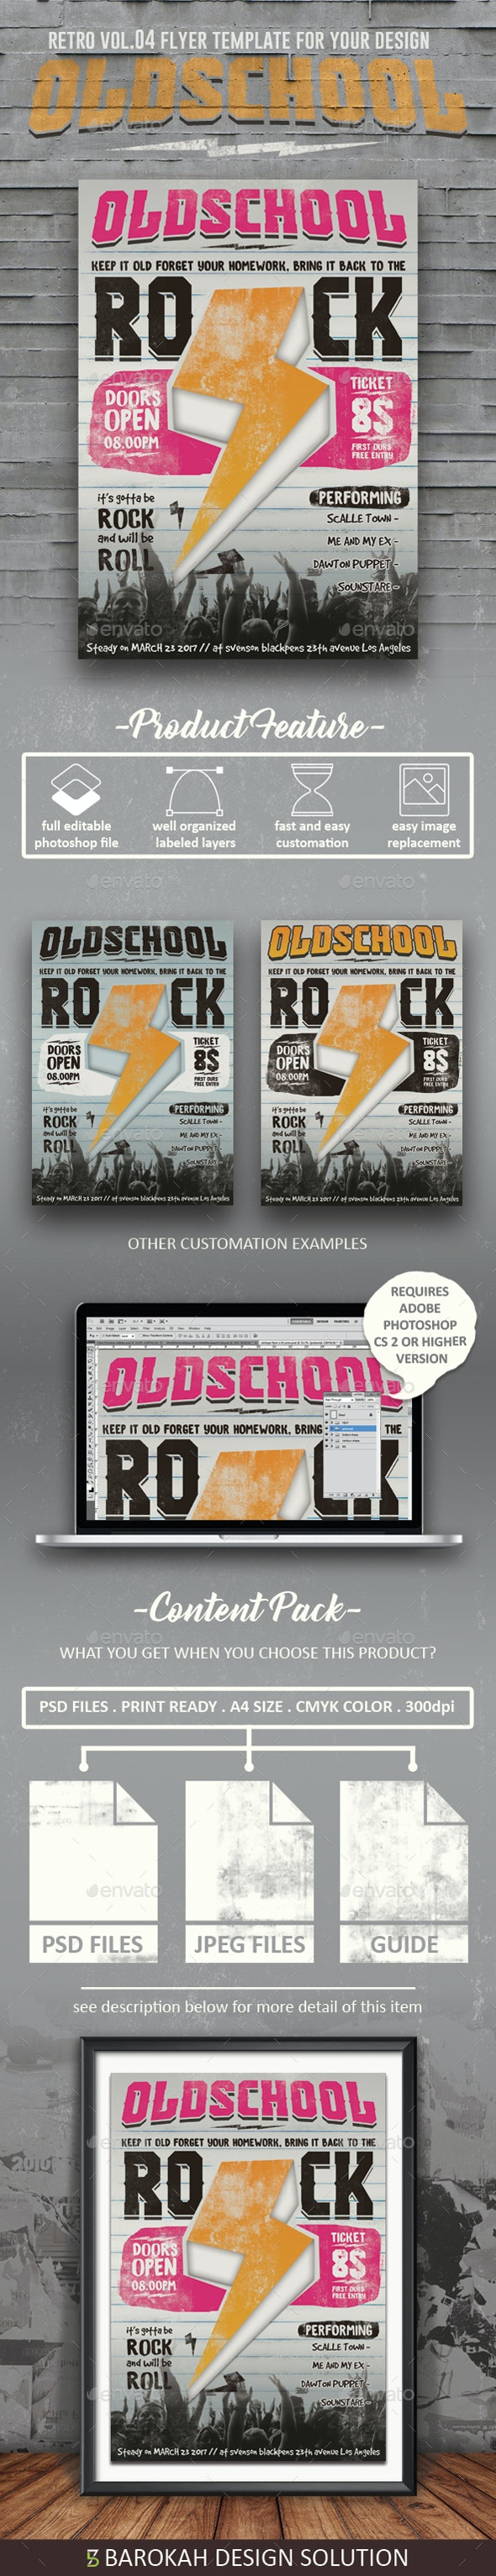 Retro vol.04 (Oldschool Rock) - Events Flyers